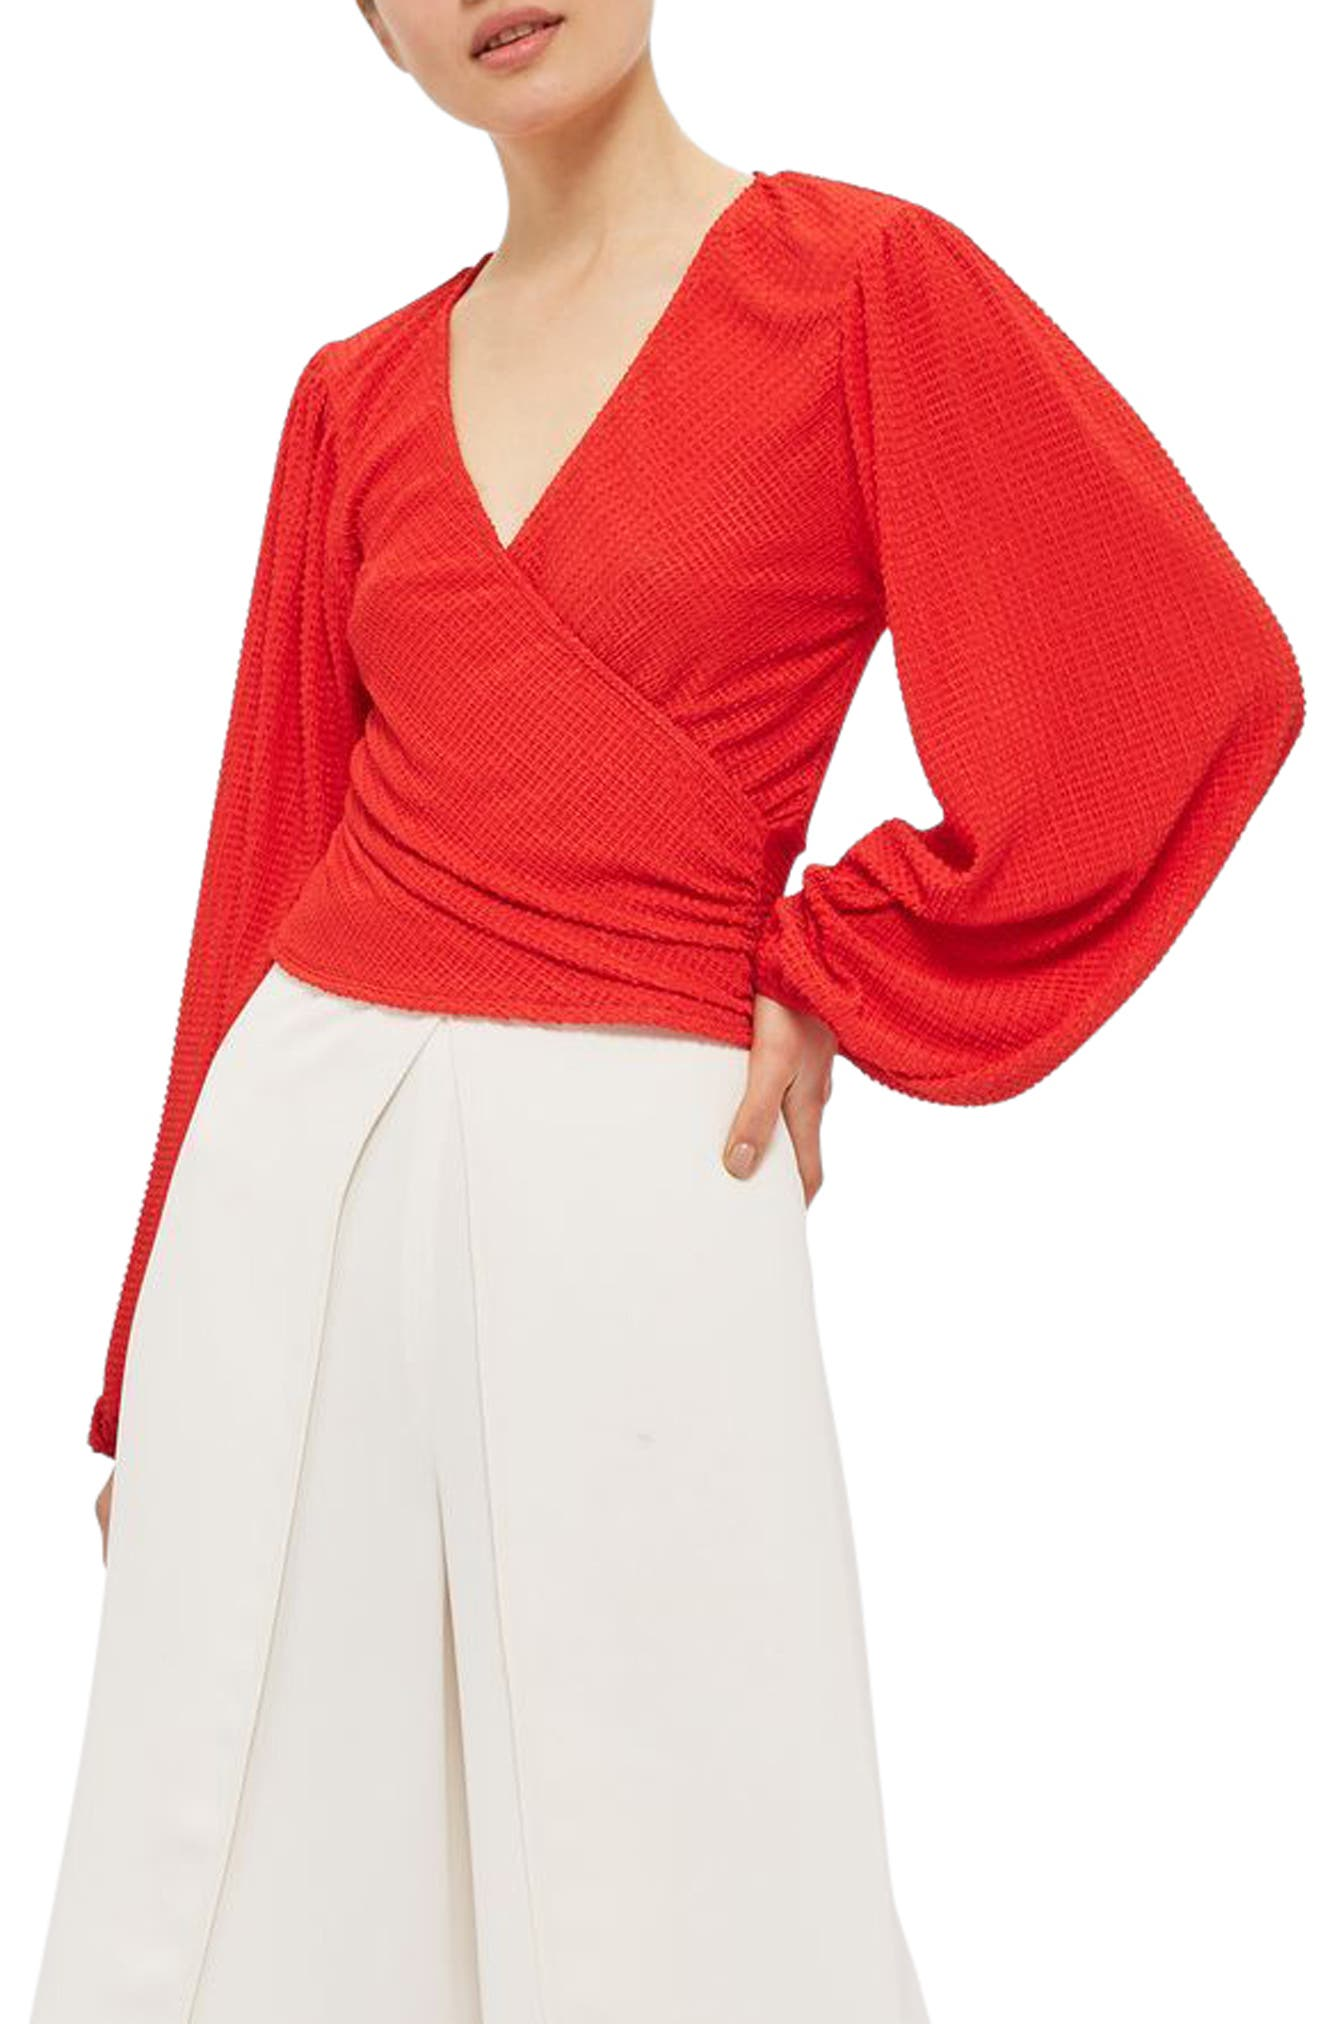 Topshop Blouson Sleeve Textured Wrap Top